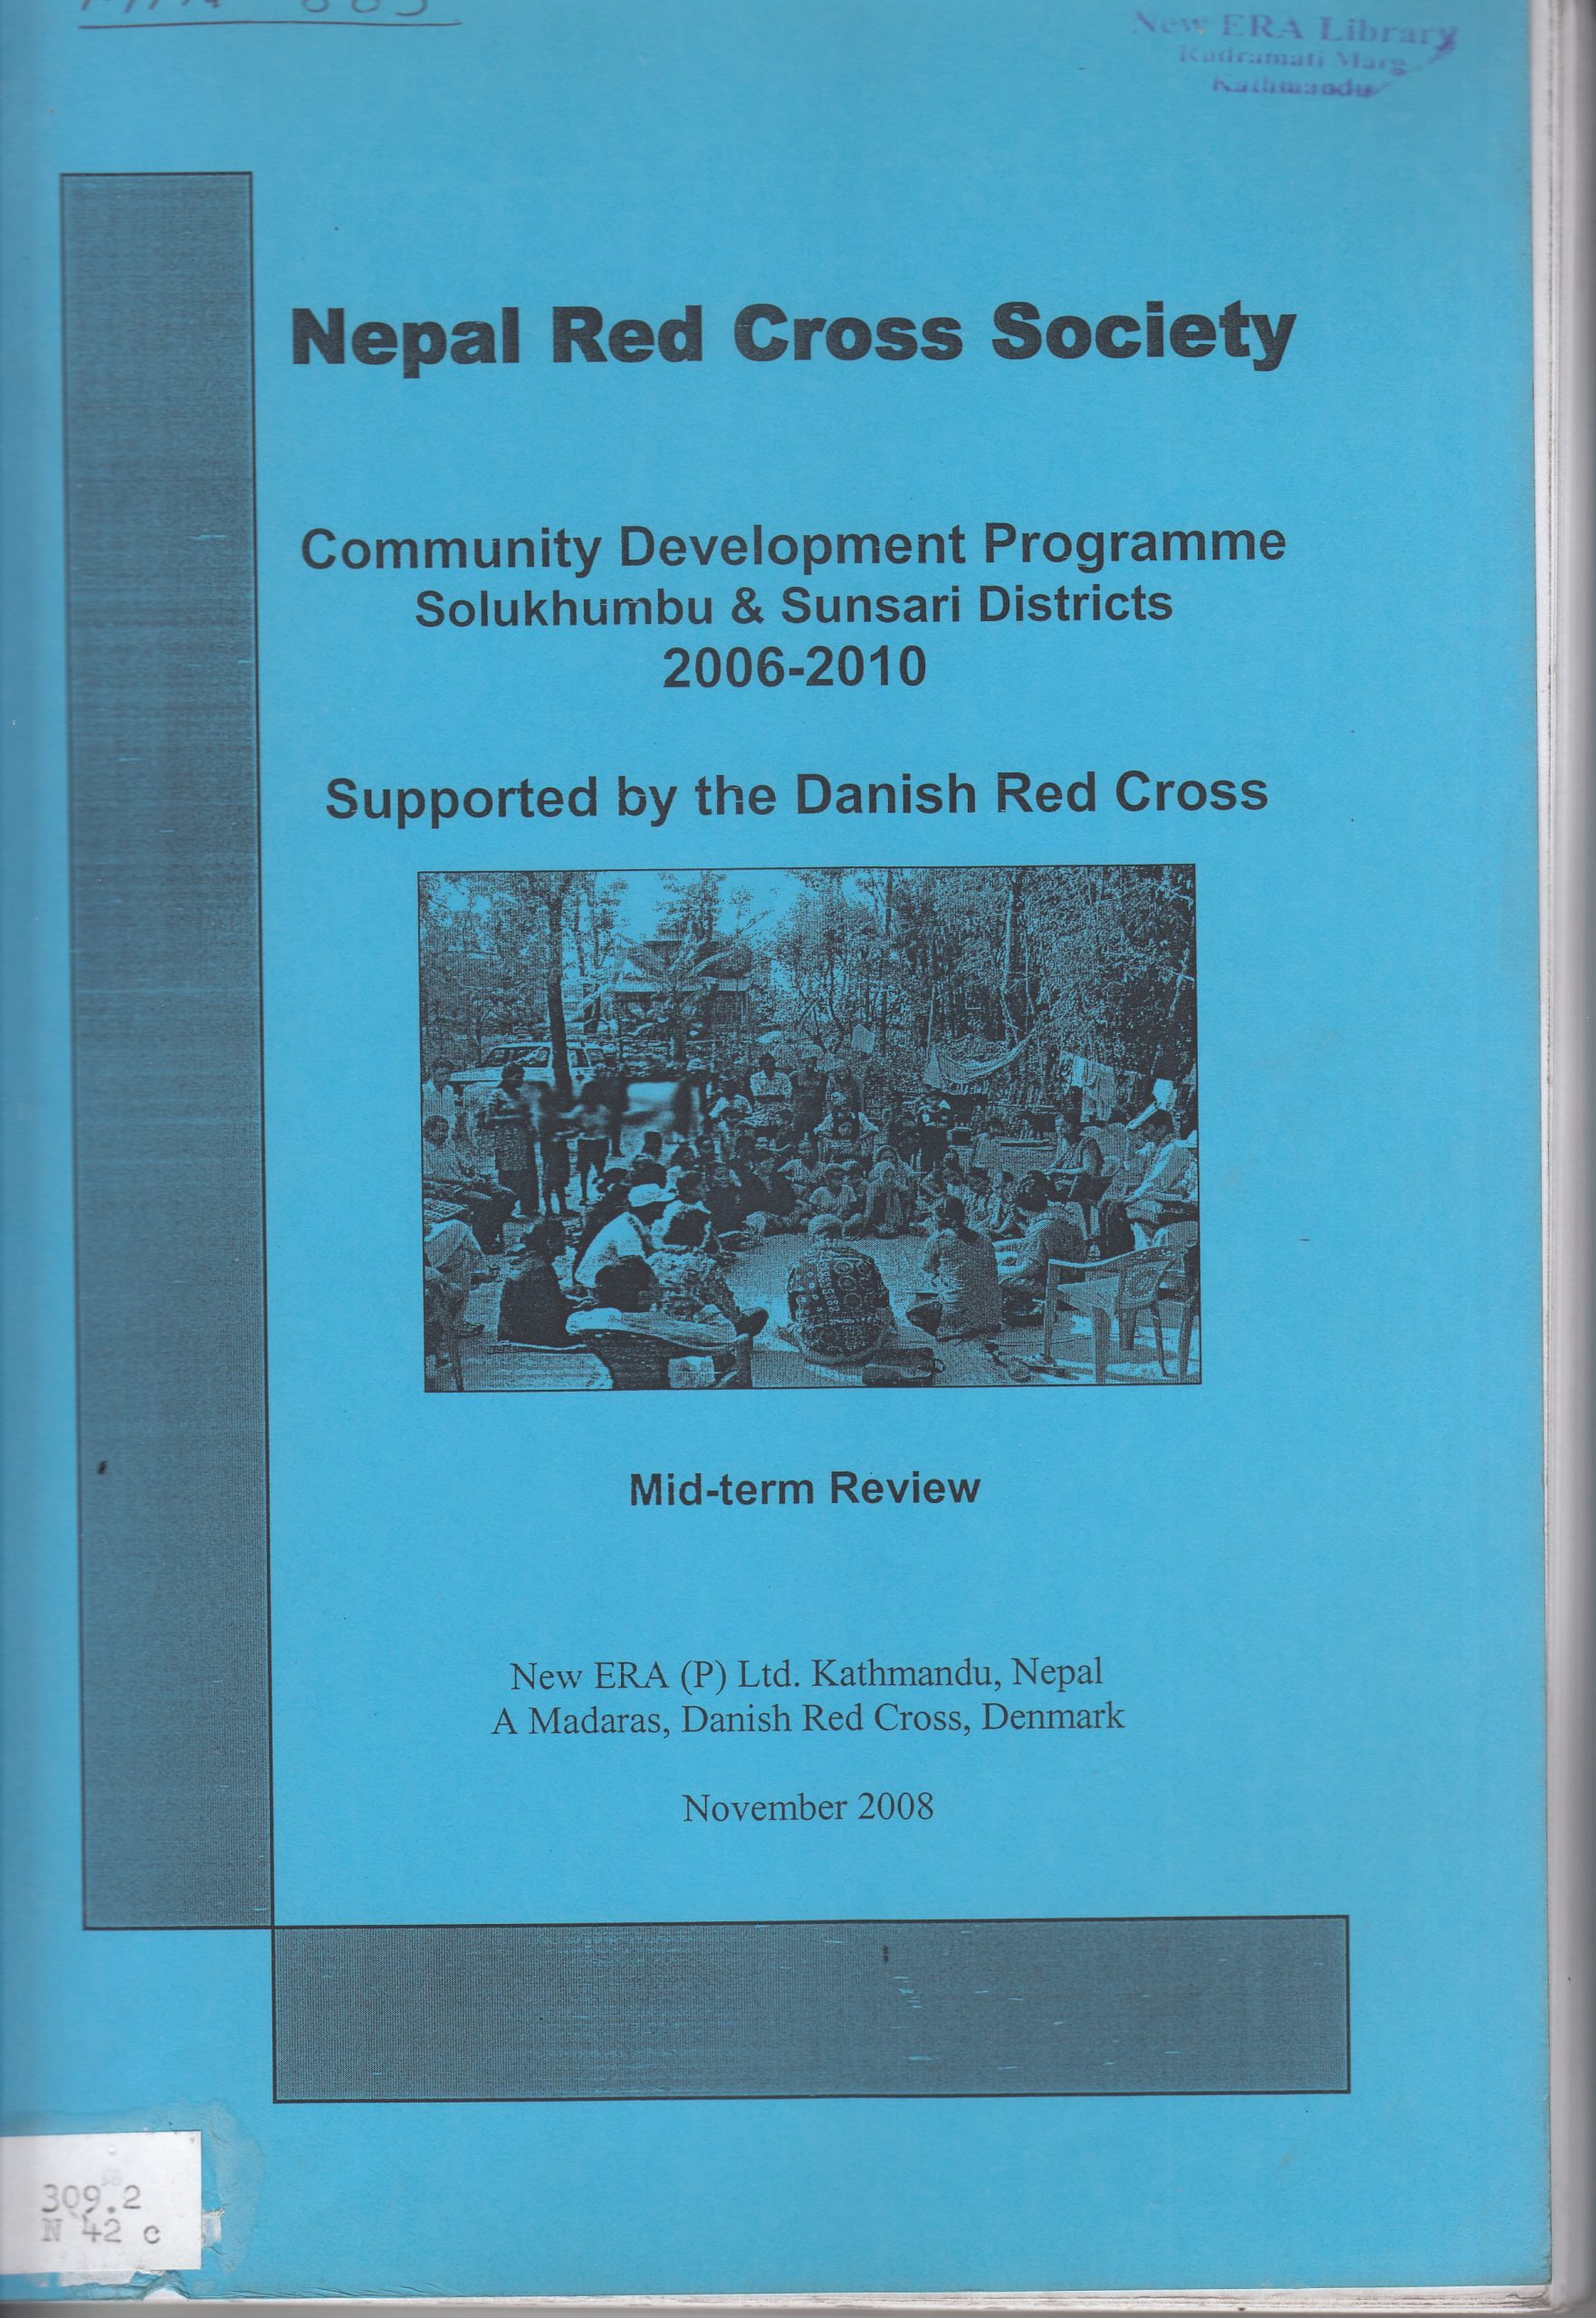 Community Development Programme in Solukhumbu and Sunsari Districts 2006-2010 – Mid-term Review